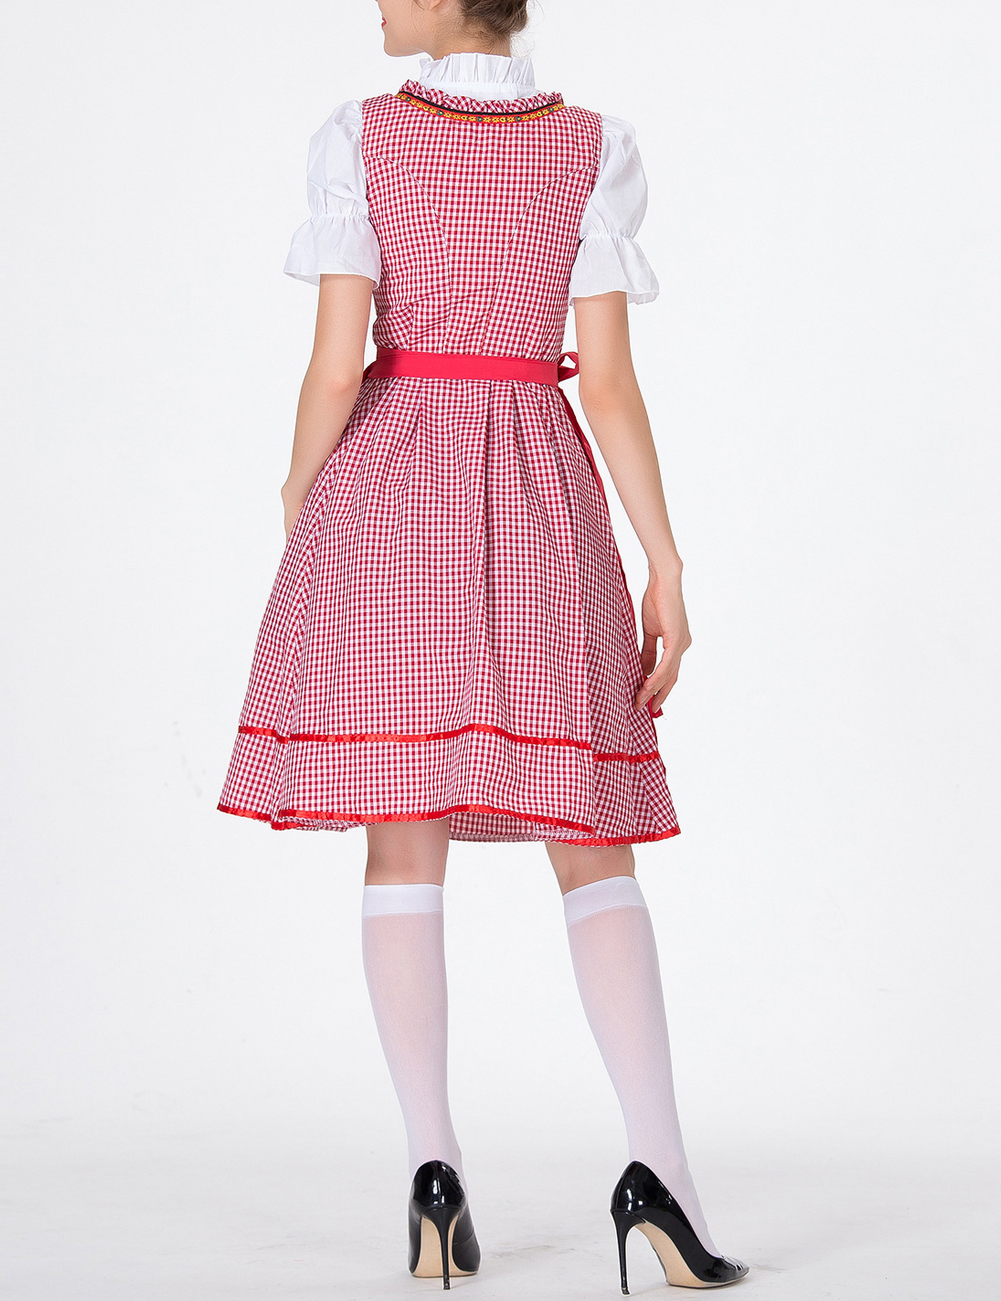 //cdn.affectcloud.com/feelingirldress/upload/imgs/2019-06-01/VZ190673-RD1/VZ190673-RD1-2.jpg